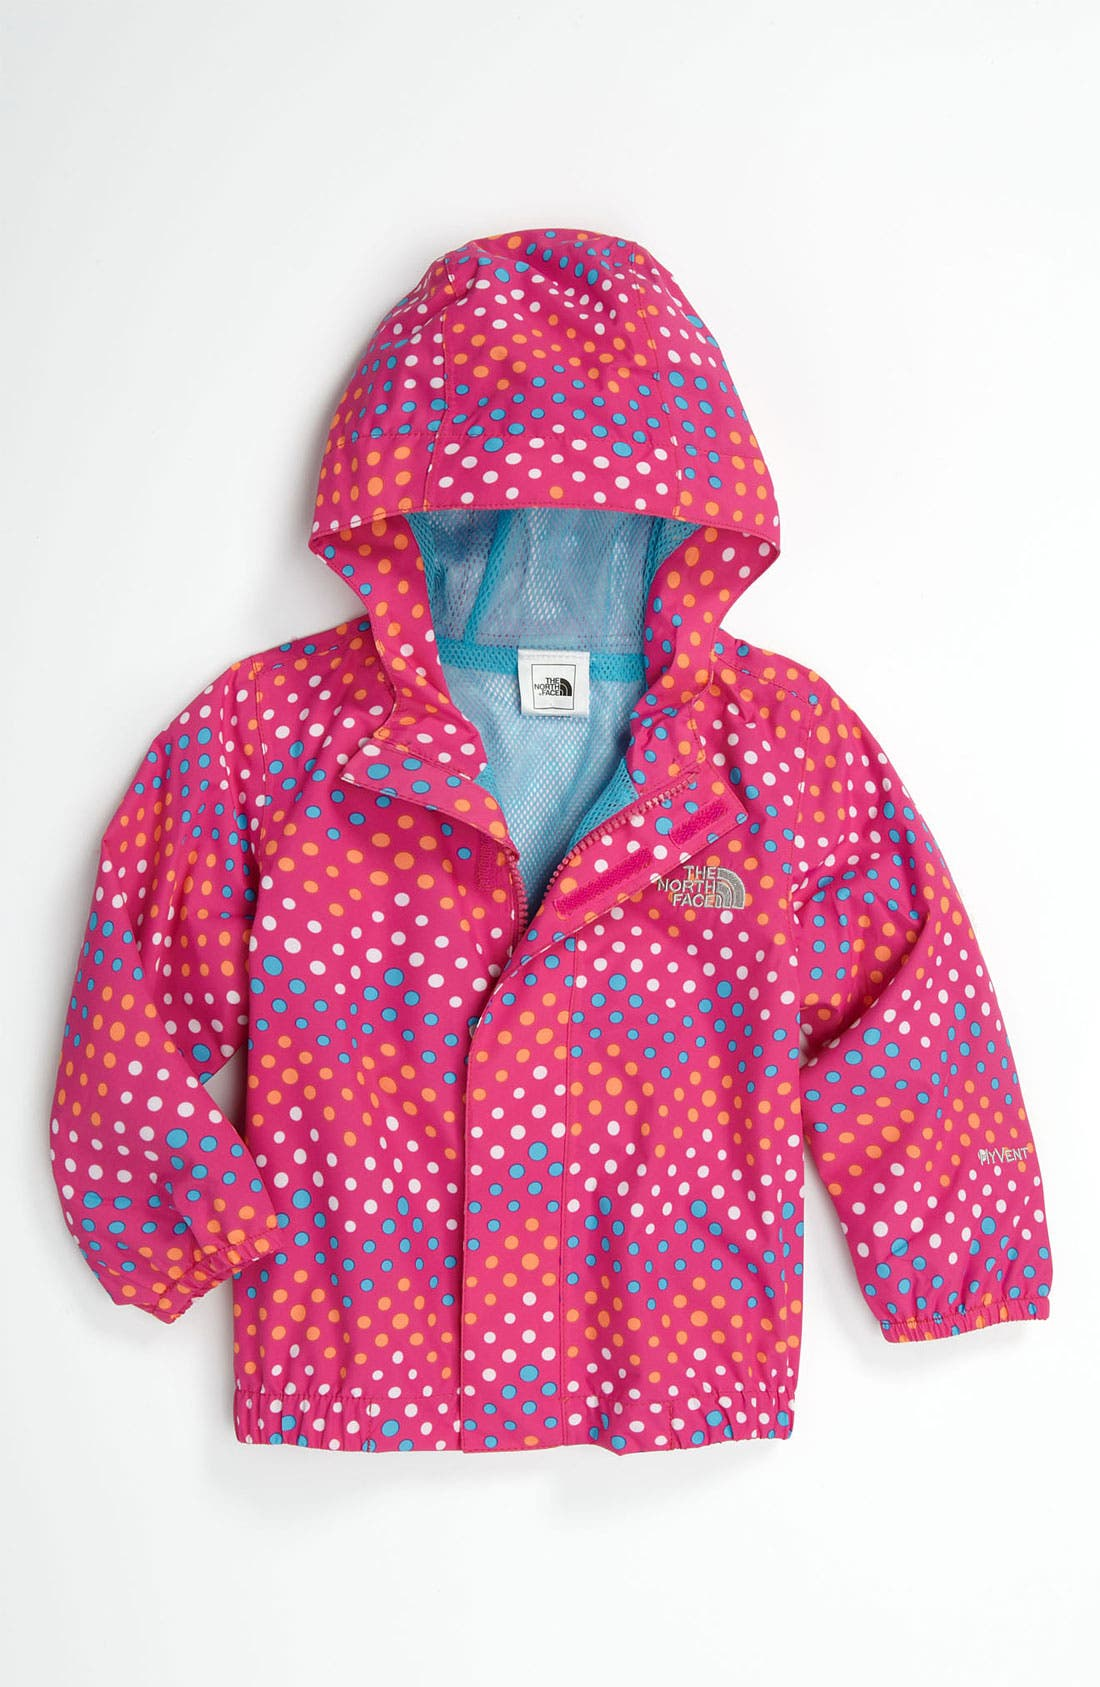 Main Image - The North Face 'Dottie - Tailout' Rain Jacket (Baby)